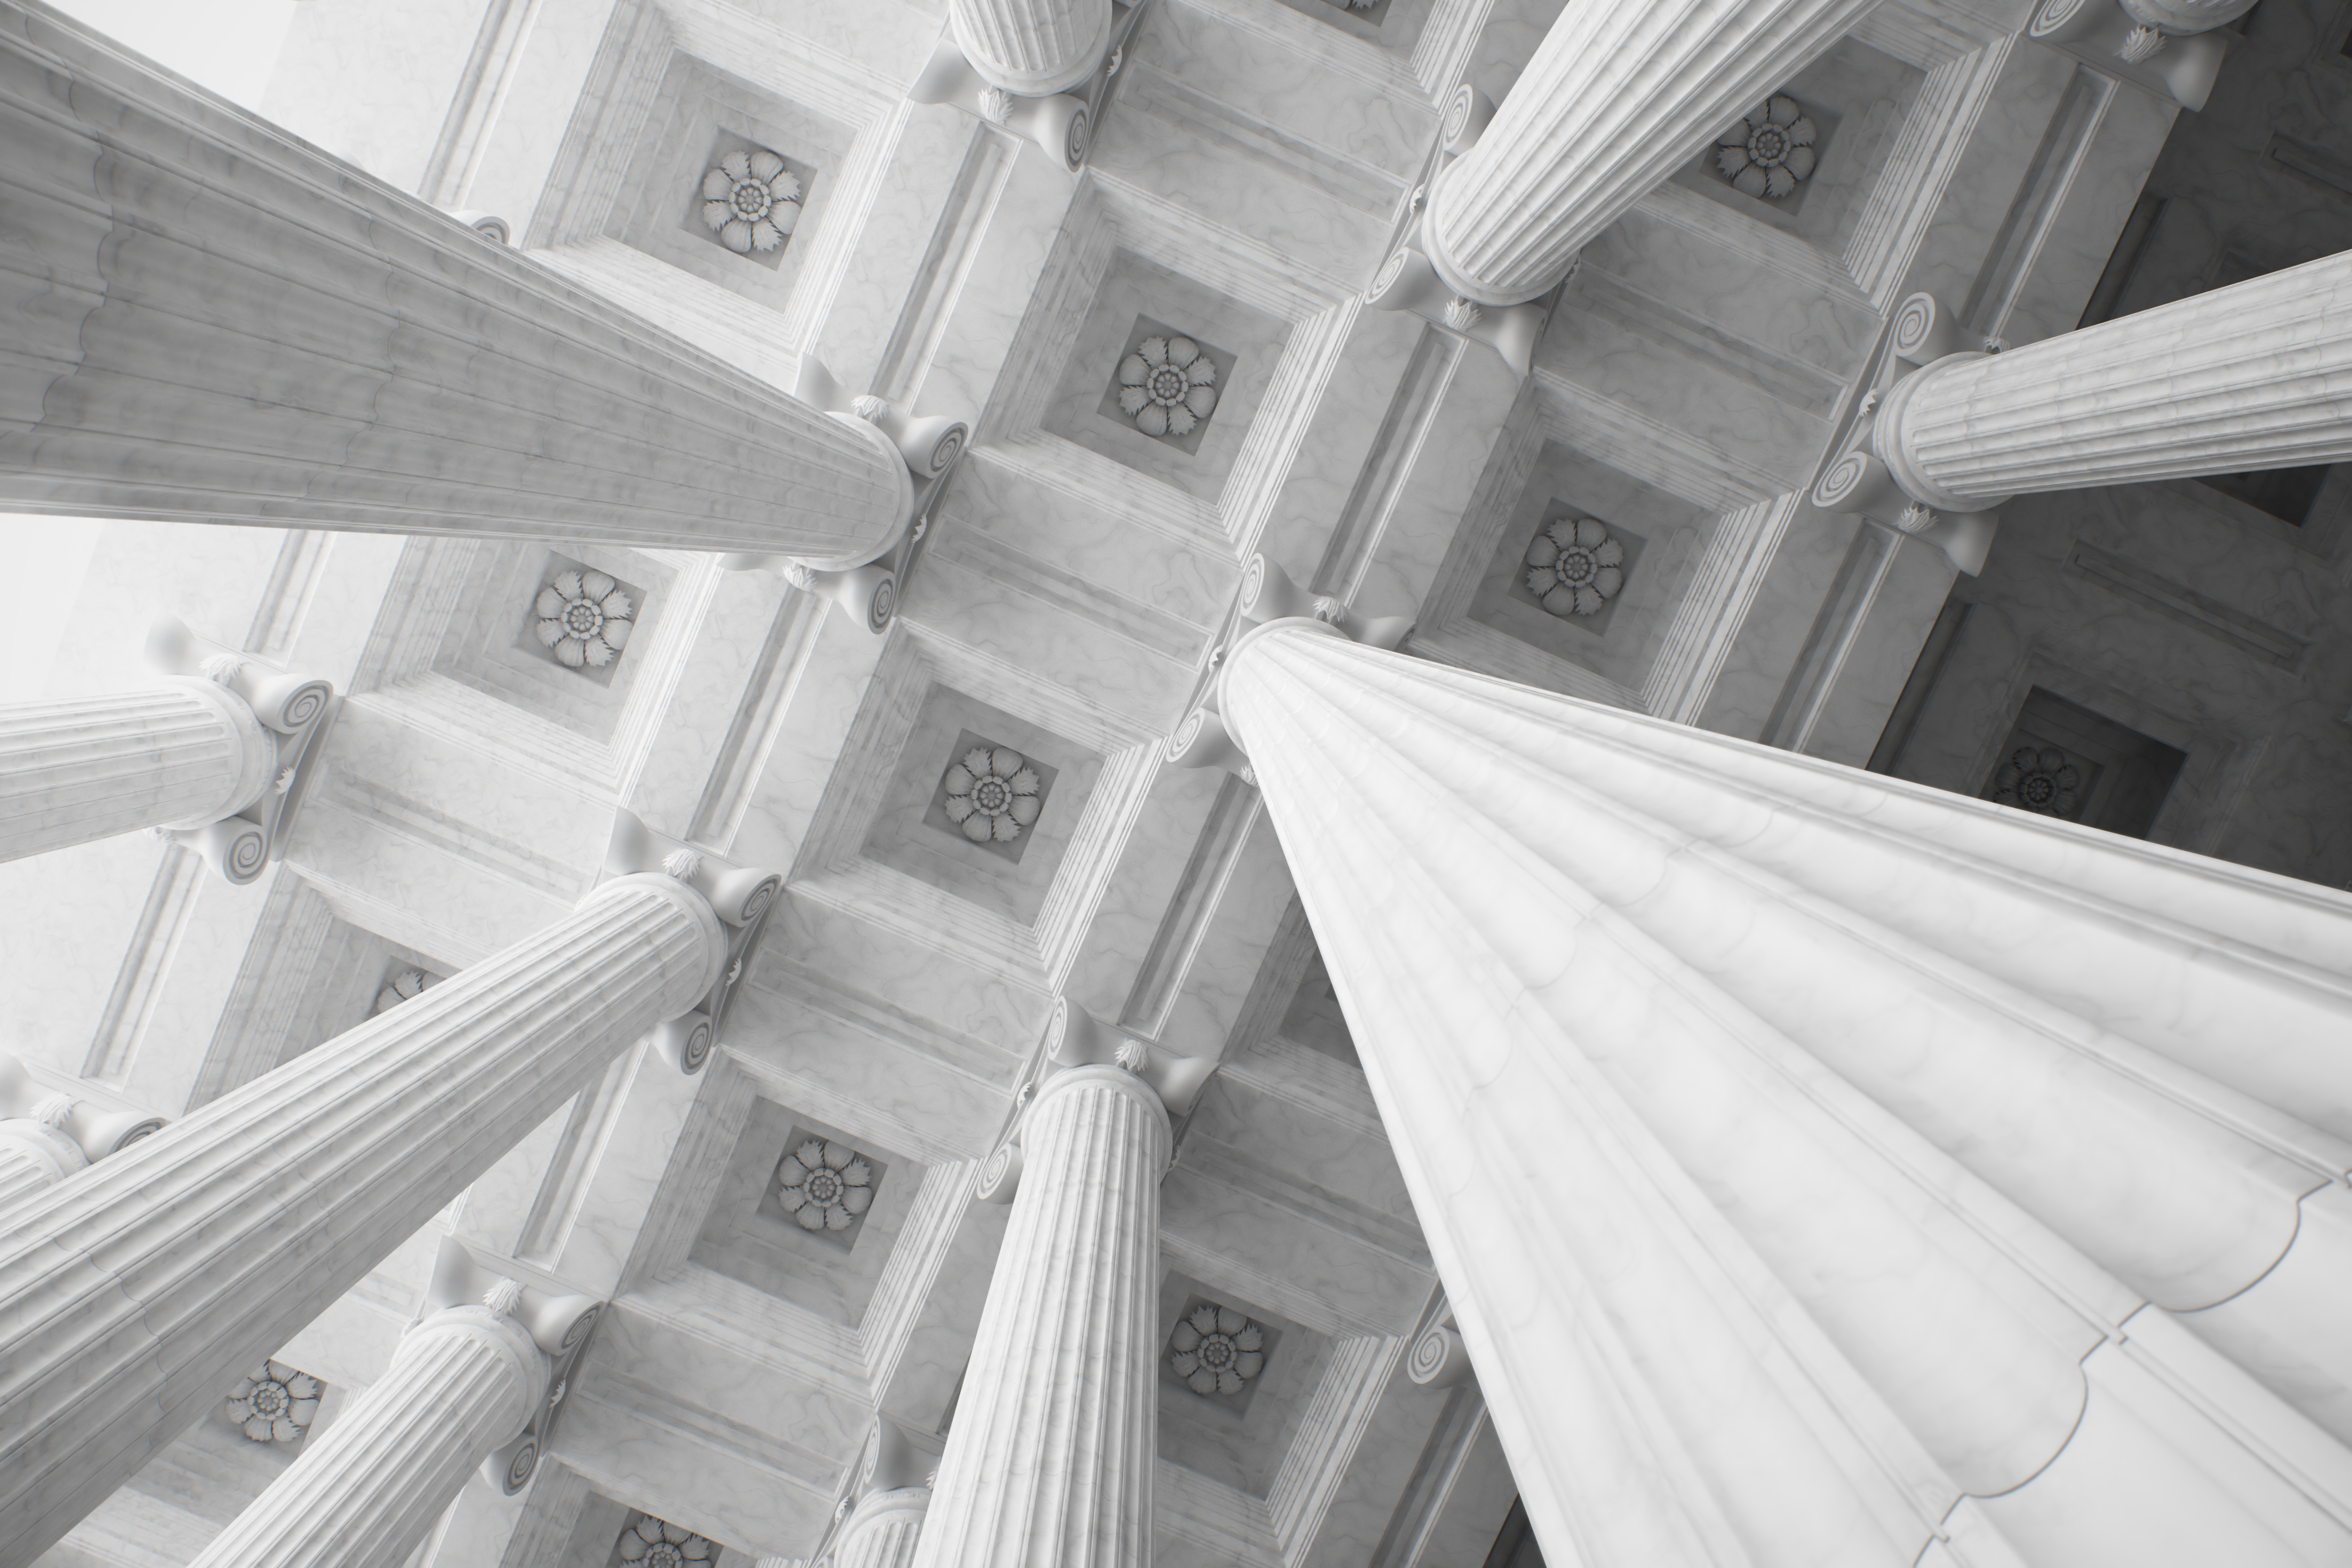 What Is the Meaning and Purpose of a Financial Institution?